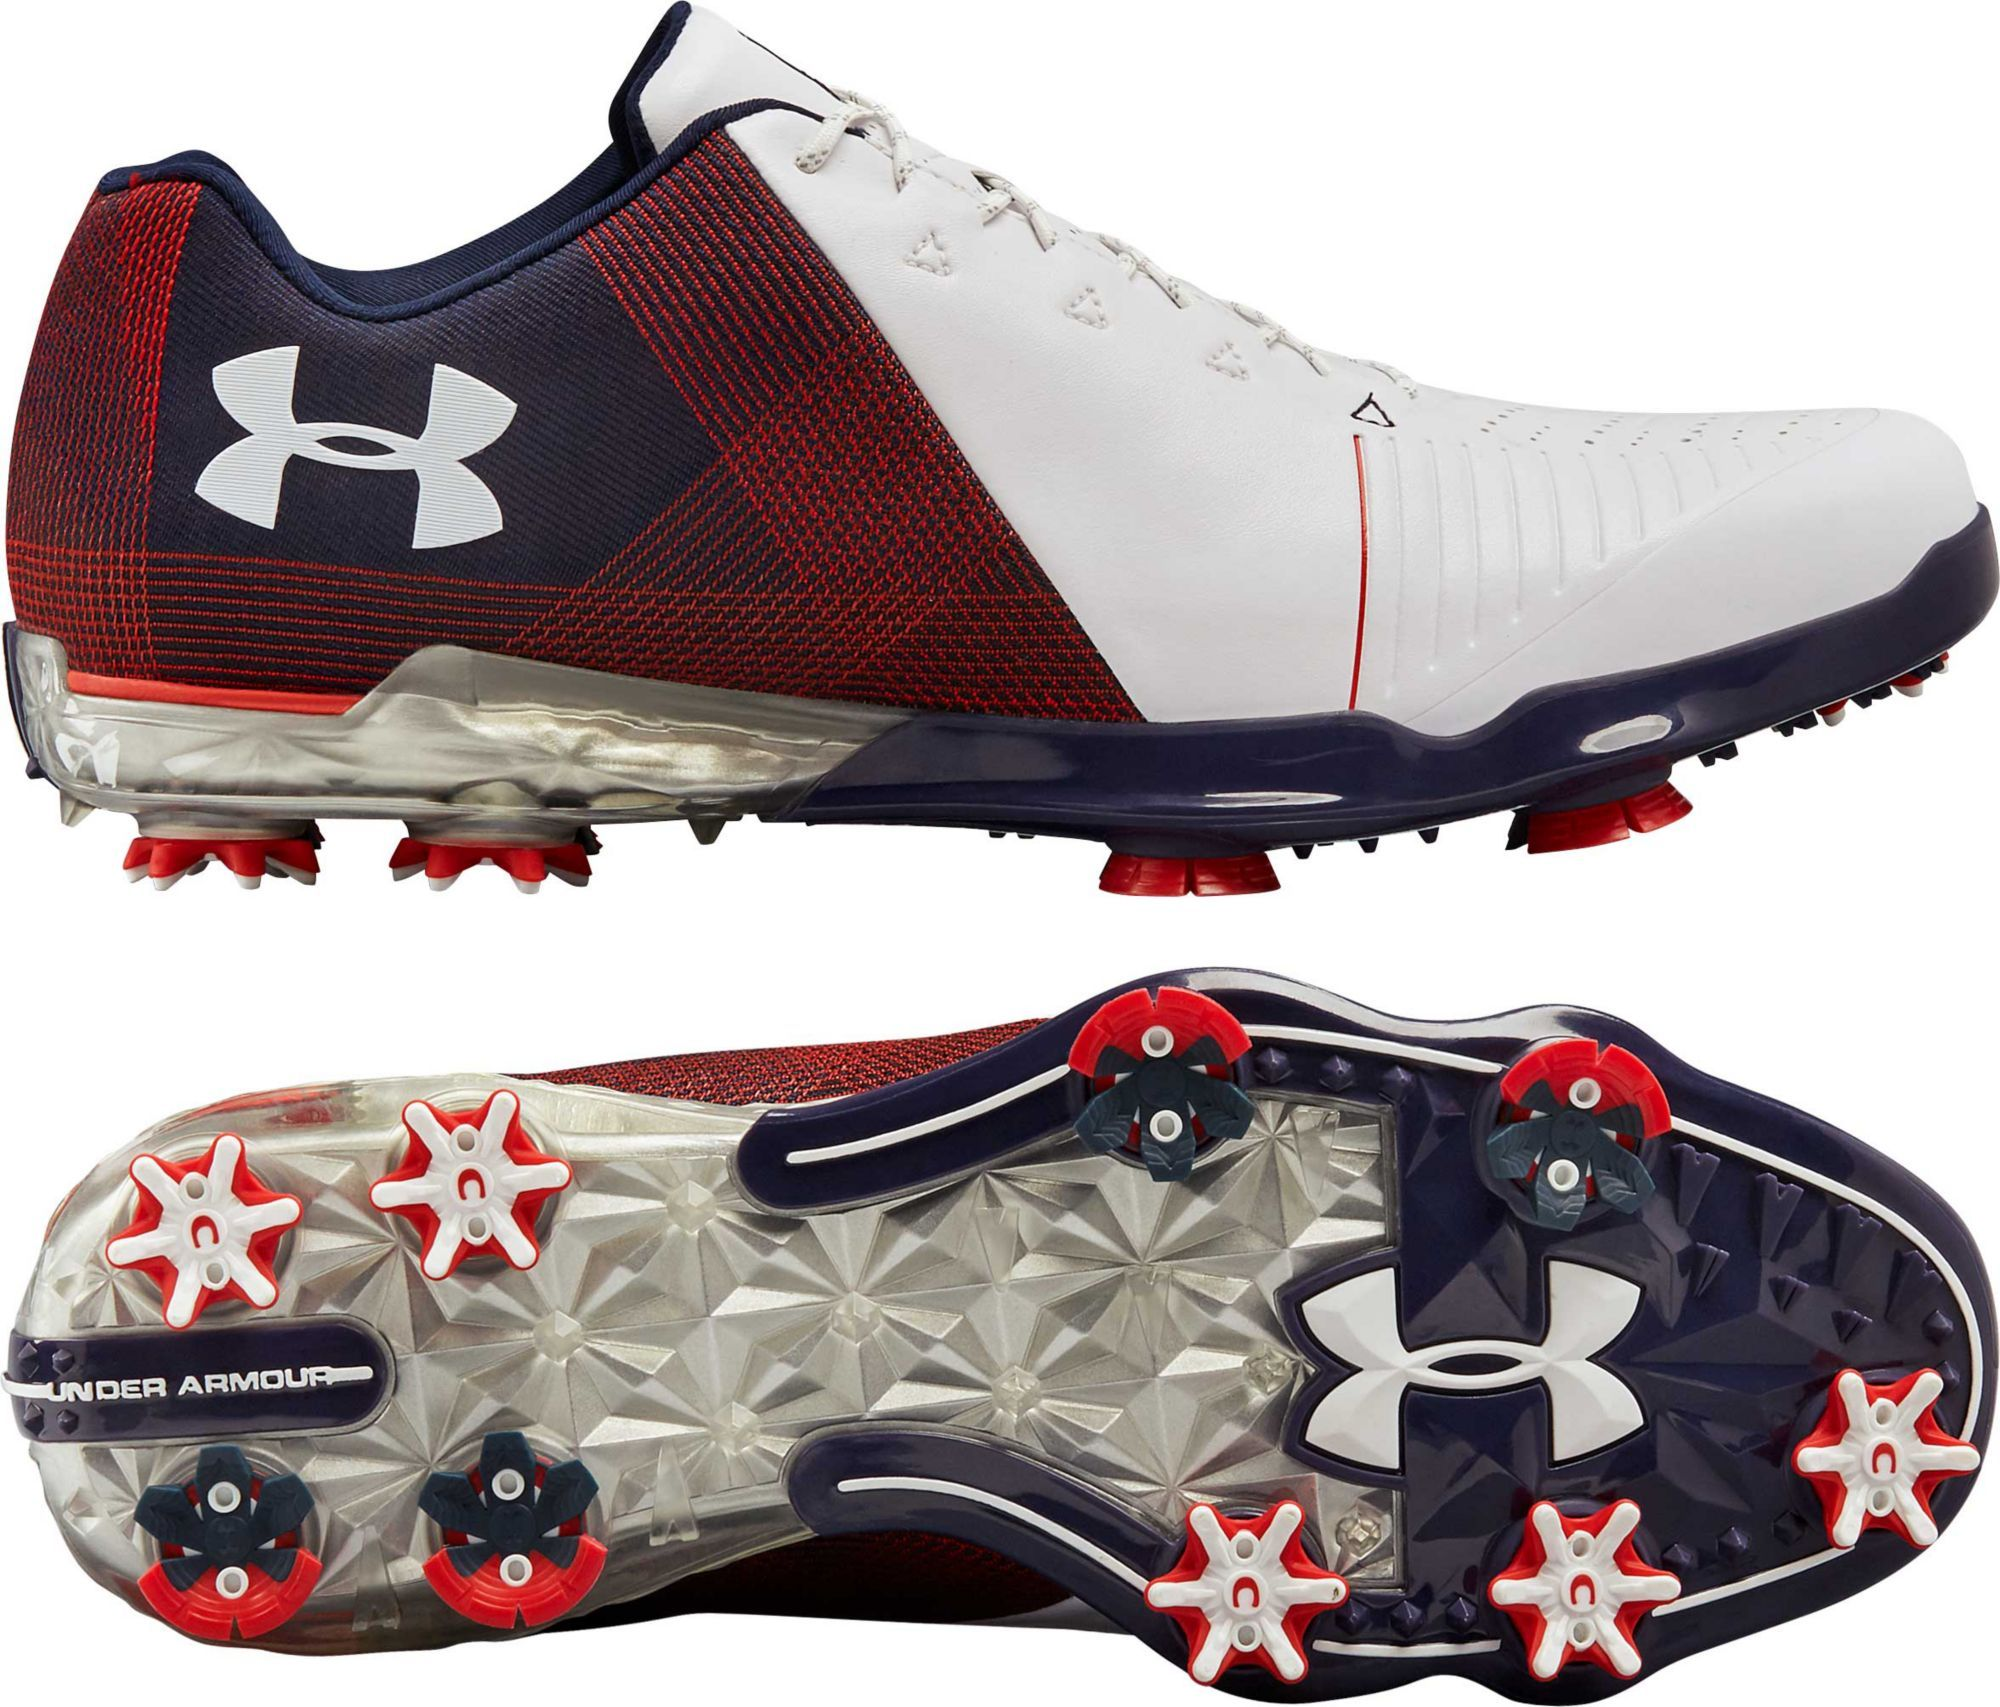 da2f399205c3 Under Armour Men s Spieth 2 USA Edition Golf Shoes in 2018 ...